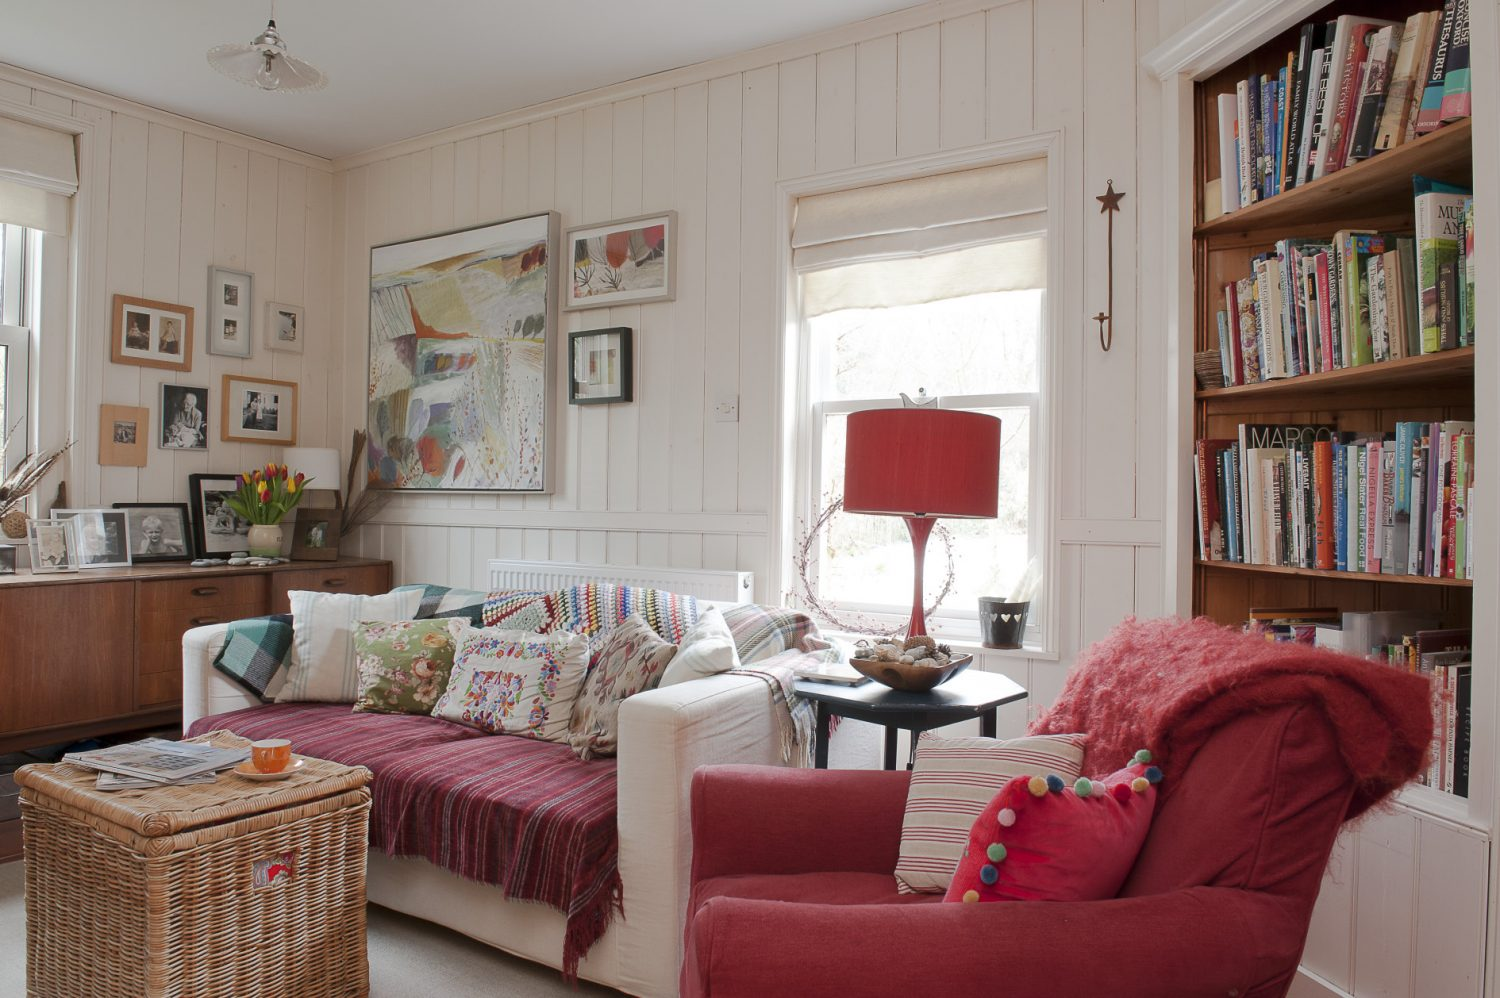 Next door to the drawing room is a wood-panelled snug that was once the kitchen. Dressed with colourful plump cushions and strong red accents, it makes an enticingly cosy retreat